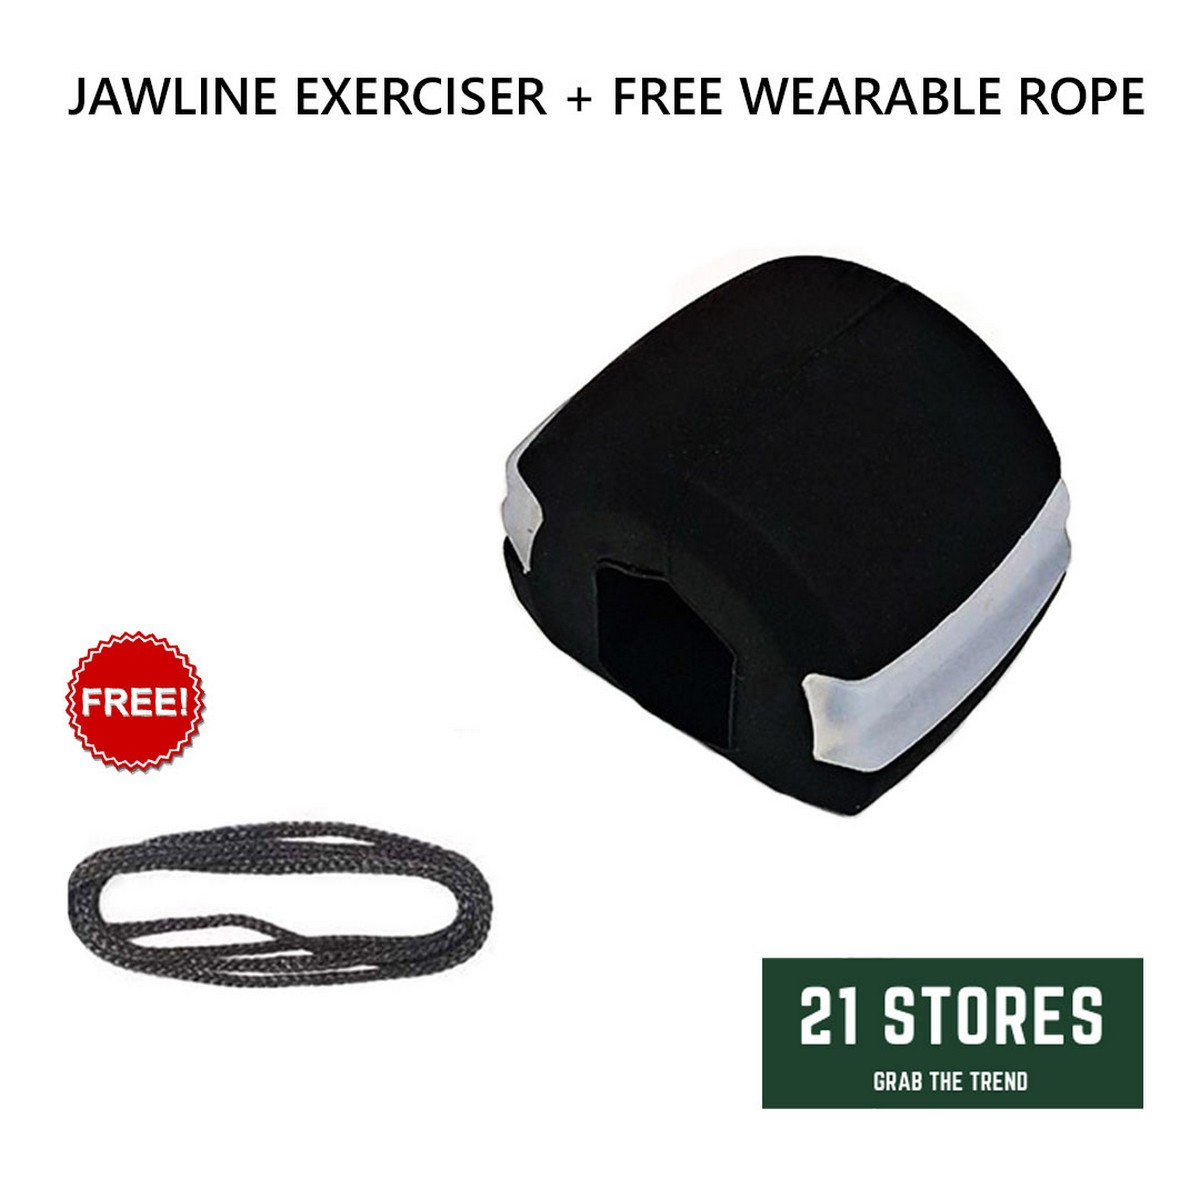 Jawline Exercise Ball, Reduce Double Chin, Jawline Exercise Ball Black for Men and Women